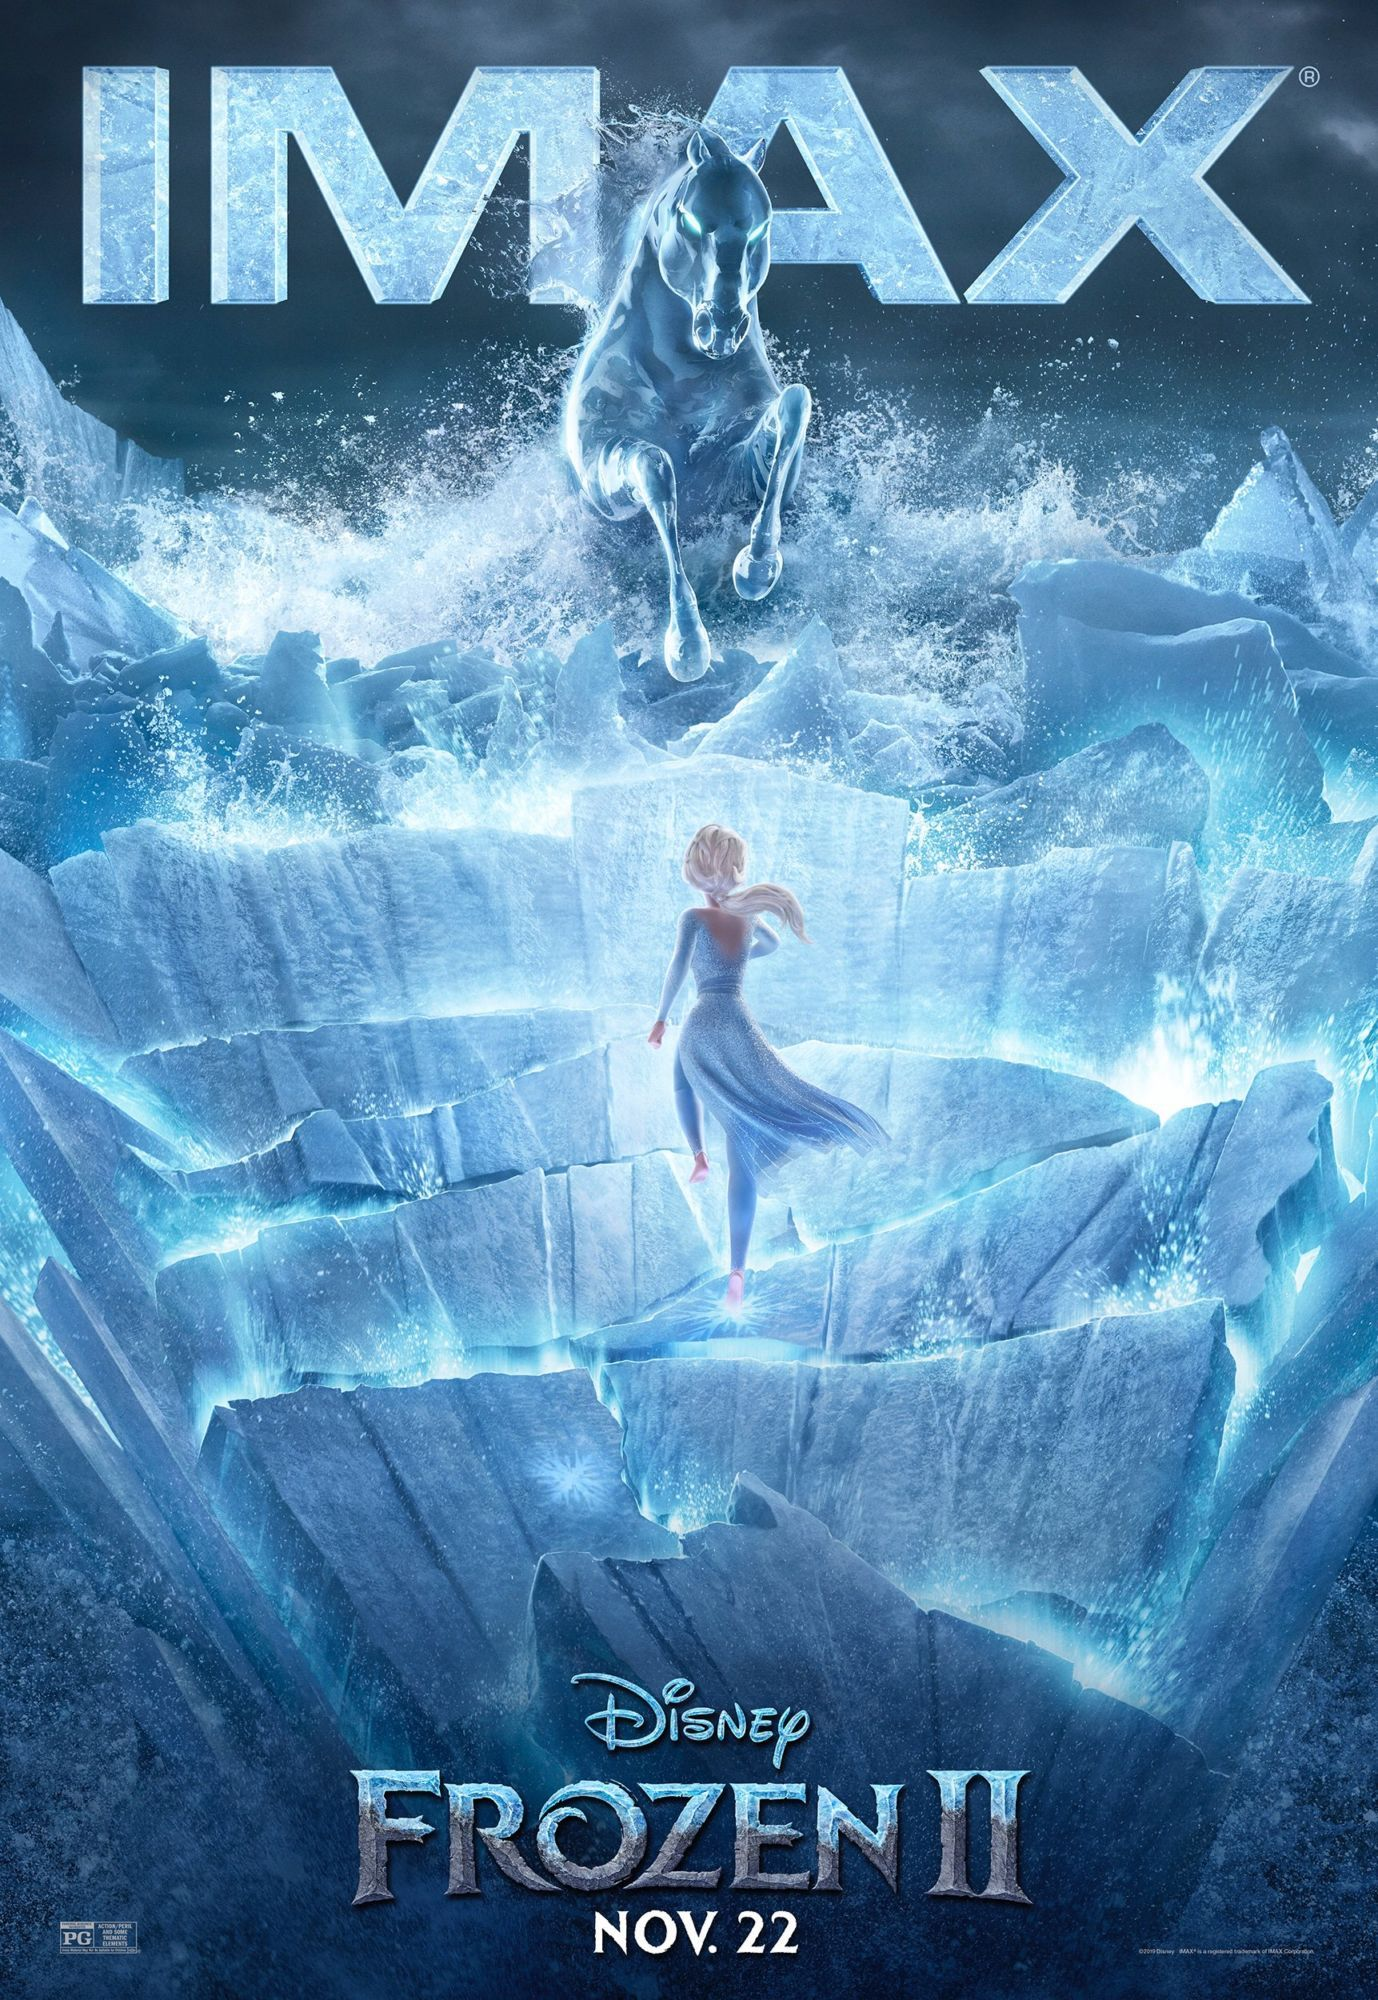 3 New Frozen 2 Posters To Celebrate Advance Tickets On Sale Rotoscopers Frozen Disney Movie New Poster Disney Animation